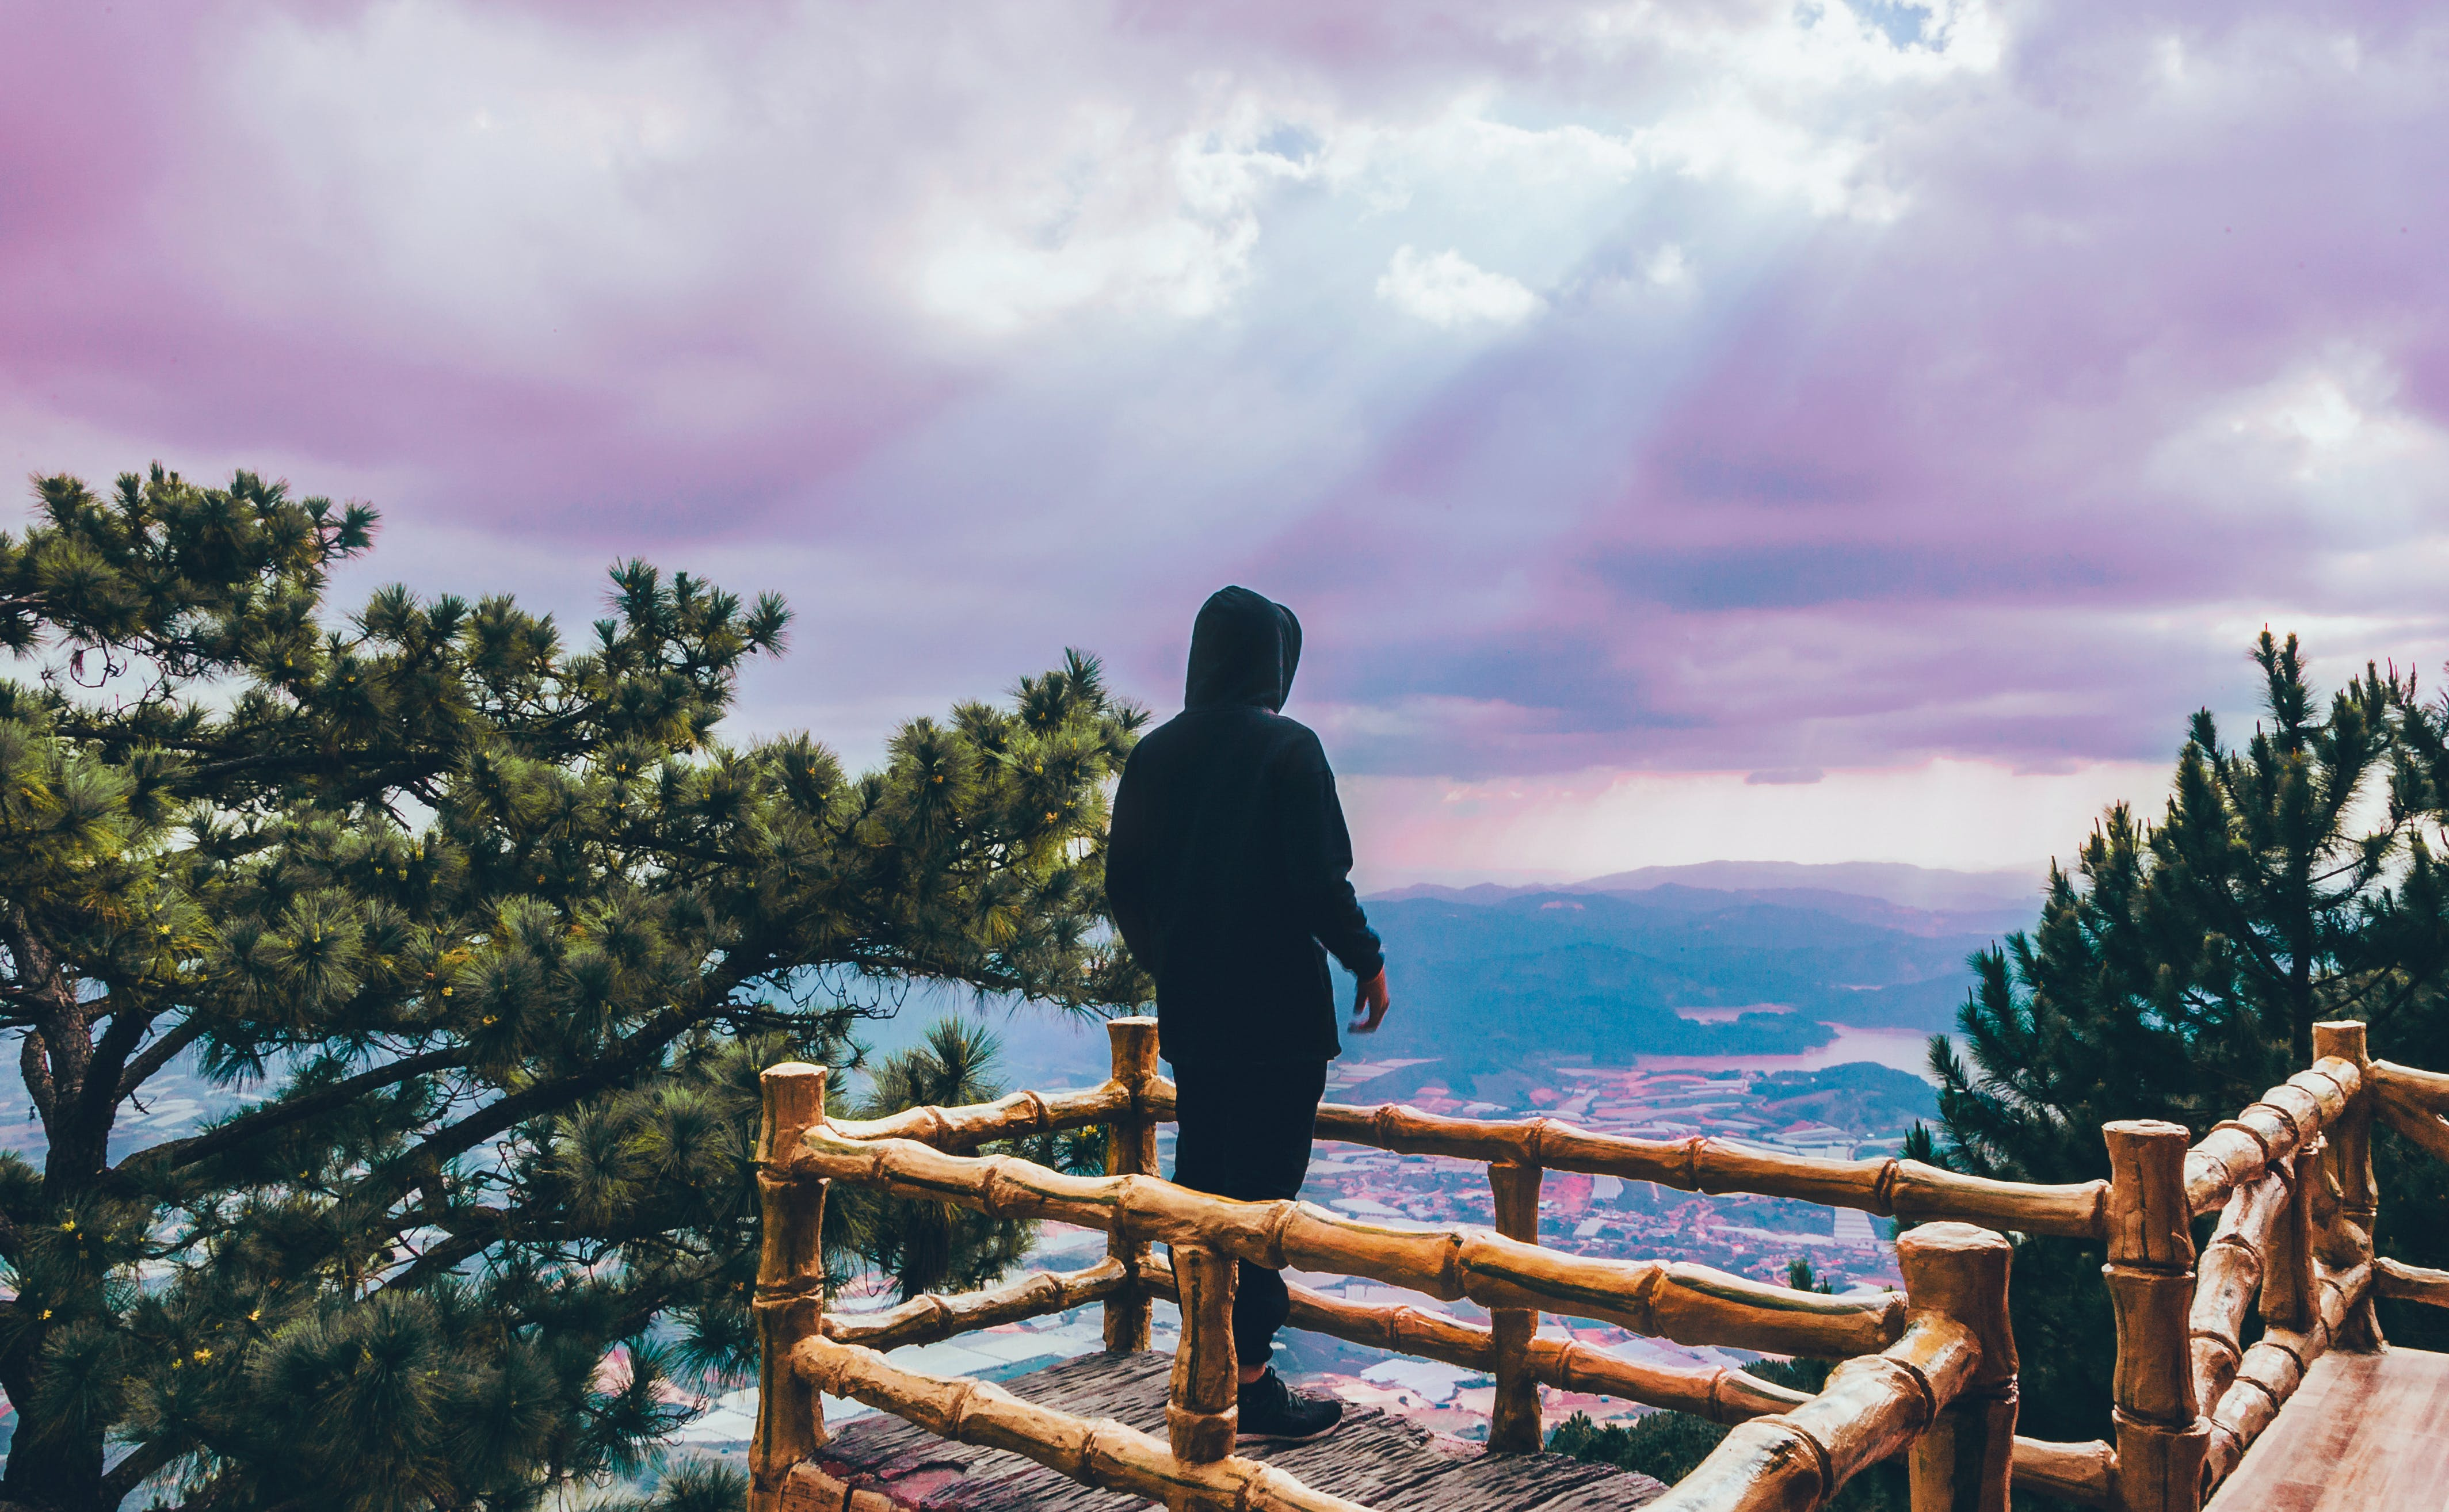 Photo of a Person Overlooking the View